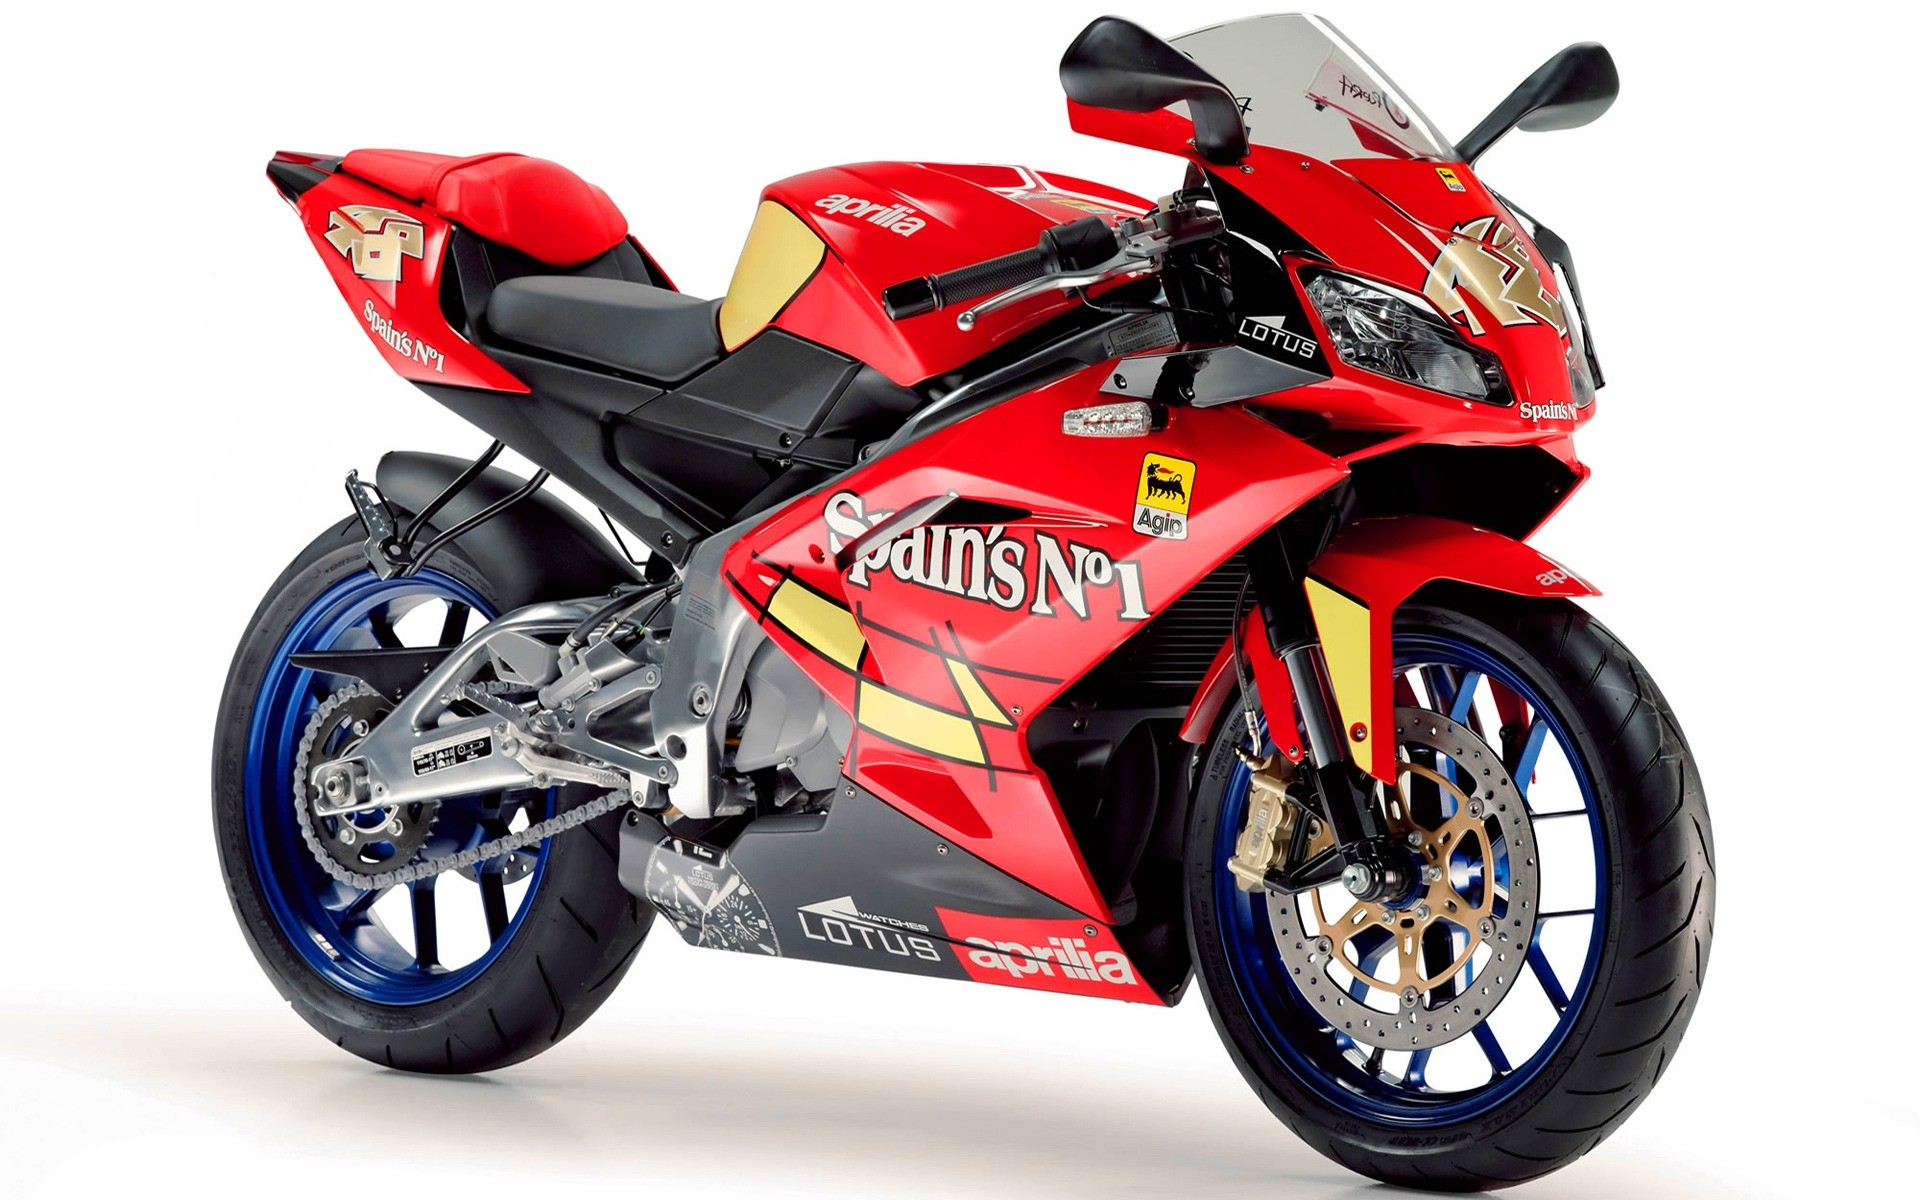 aprilia bike wheel race drive power motorbike fast vehicle hurry tire transportation system engine chrome competition racer machine championship ride track driver motor